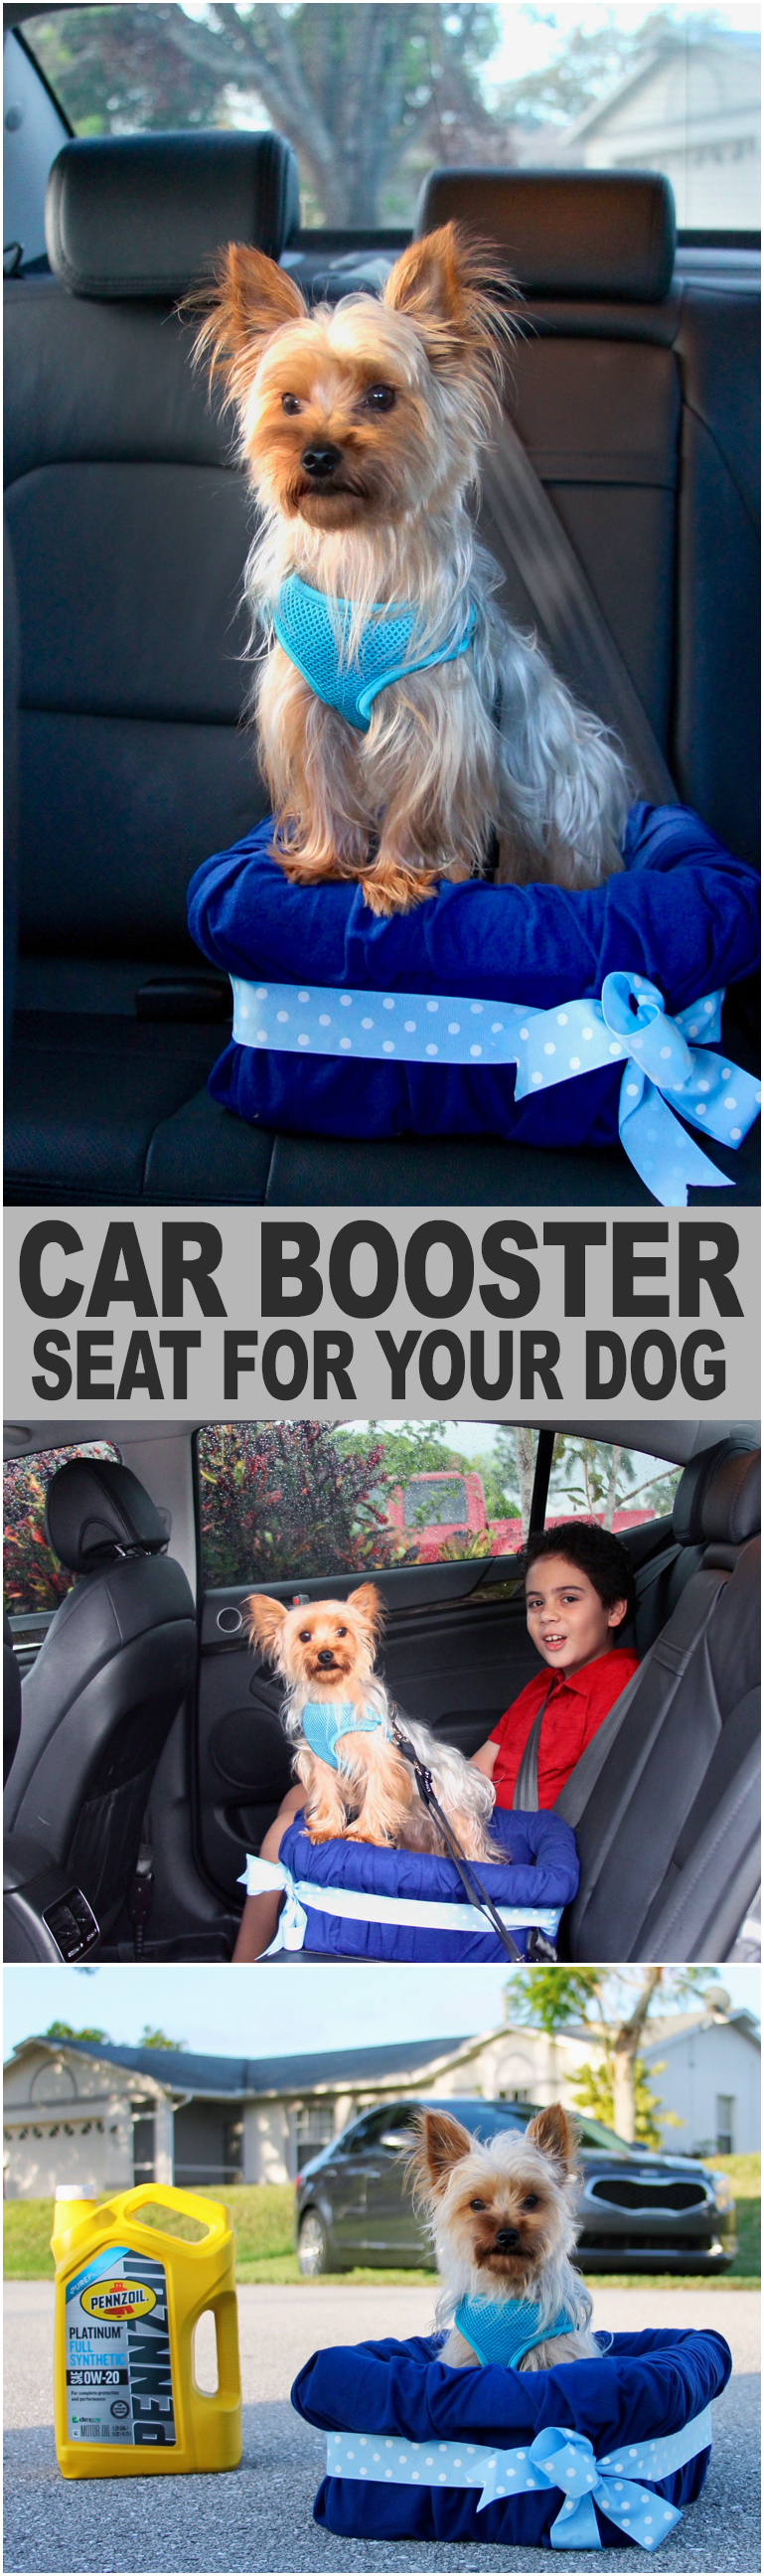 DIY Car Booster Seat For Your Dog